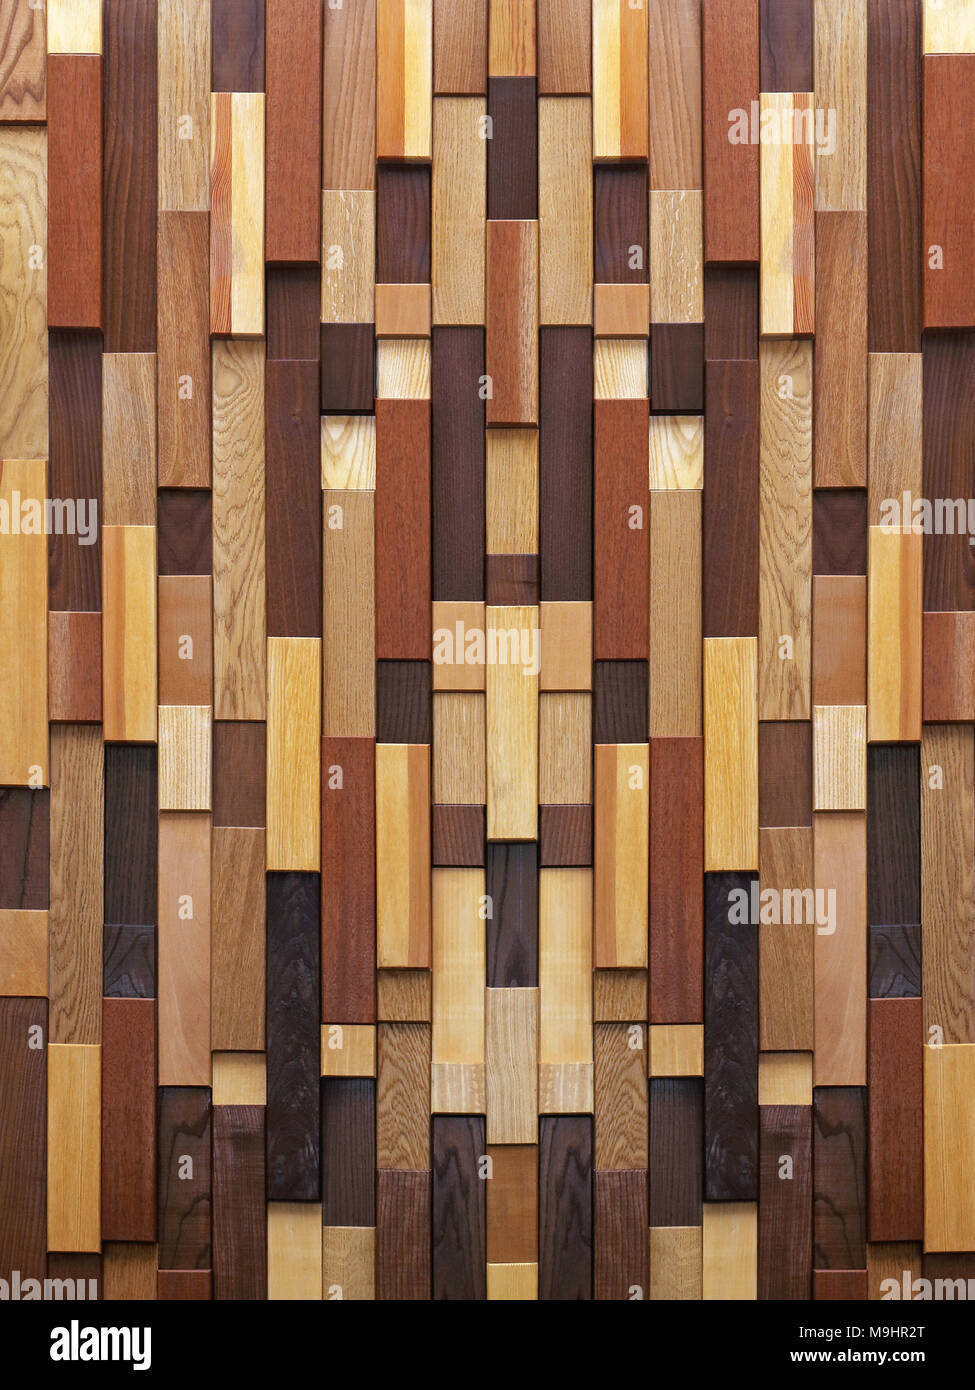 Wood Texture Made With Wooden Tiles Background Stock Photo ...